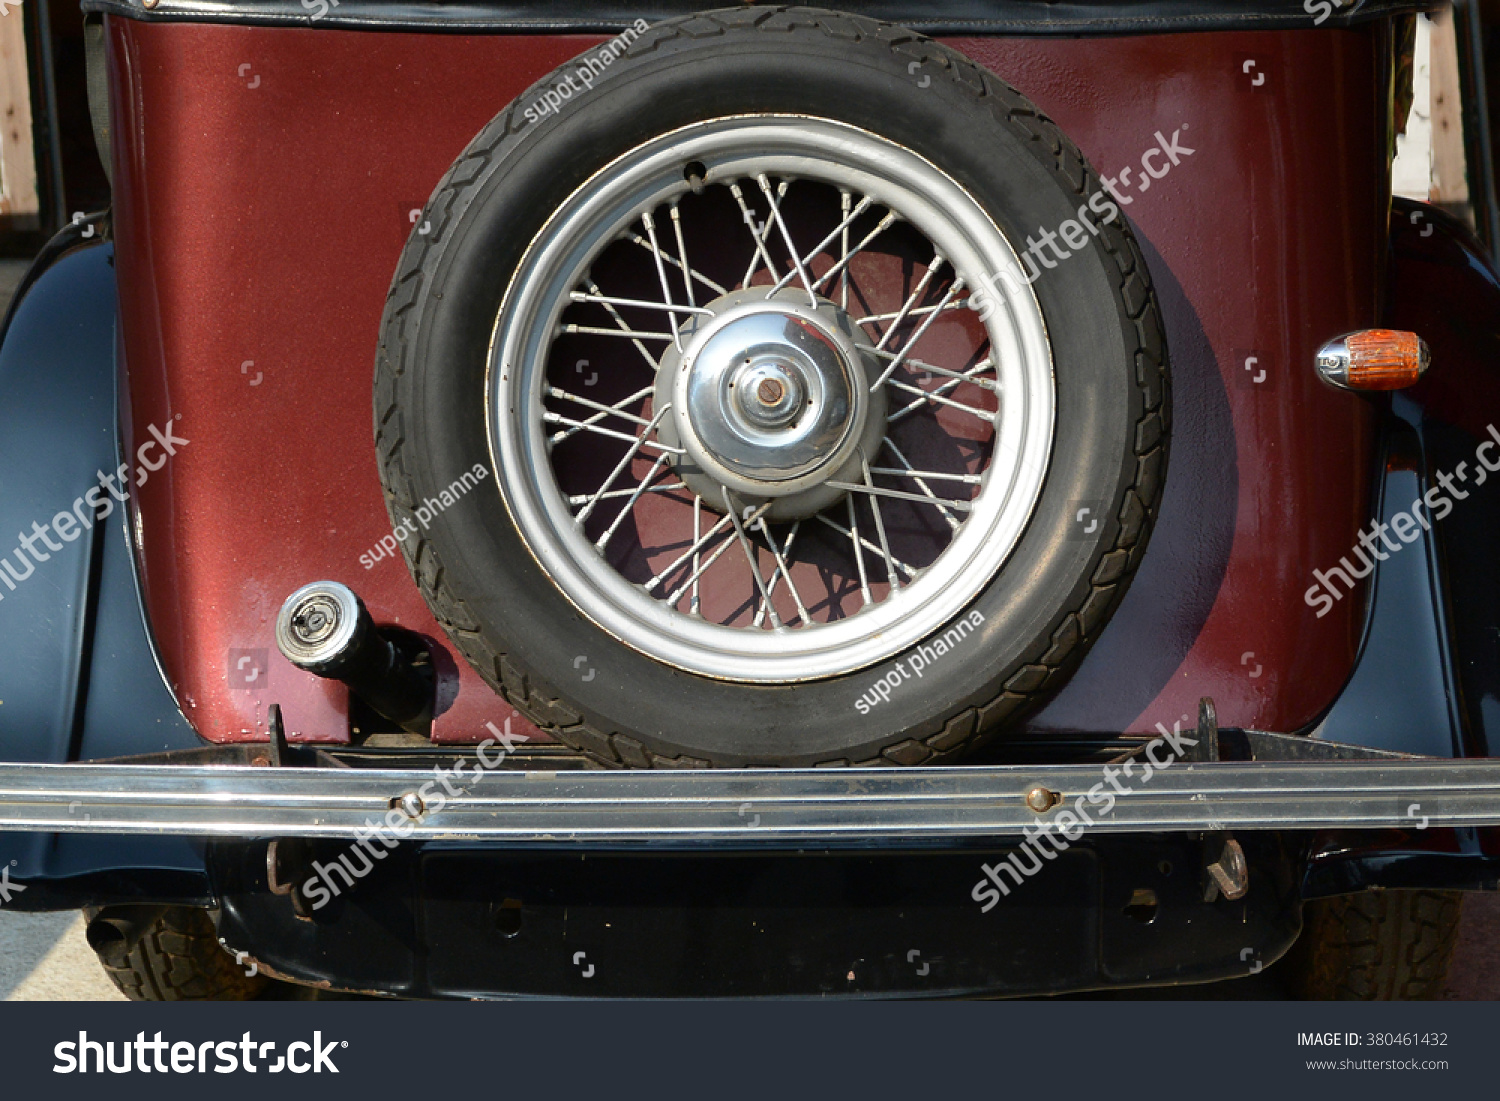 Antique Car Parts Stock Photo (Royalty Free) 380461432 - Shutterstock